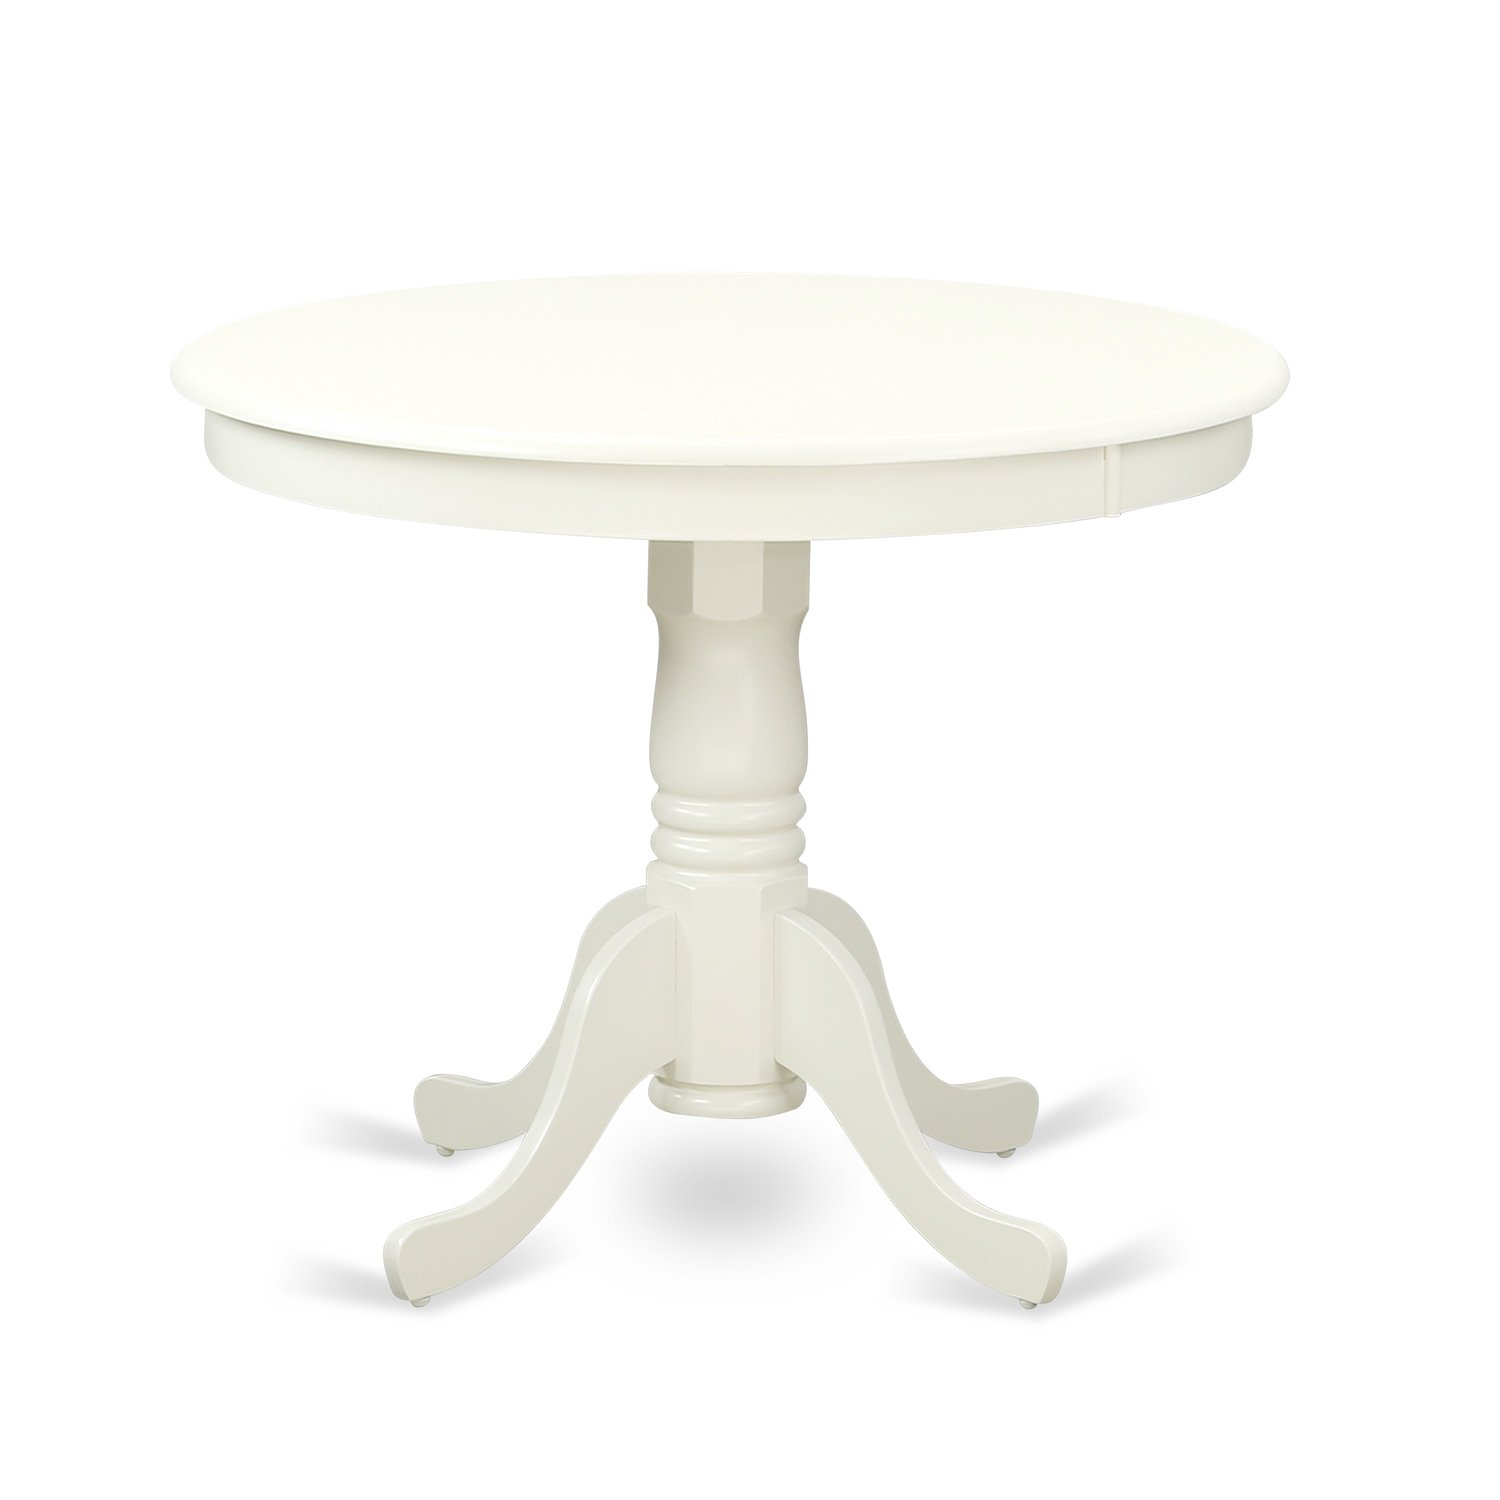 East West Furniture ANT-LWH-TP Antique Table 36 Round with Finish, Linen White